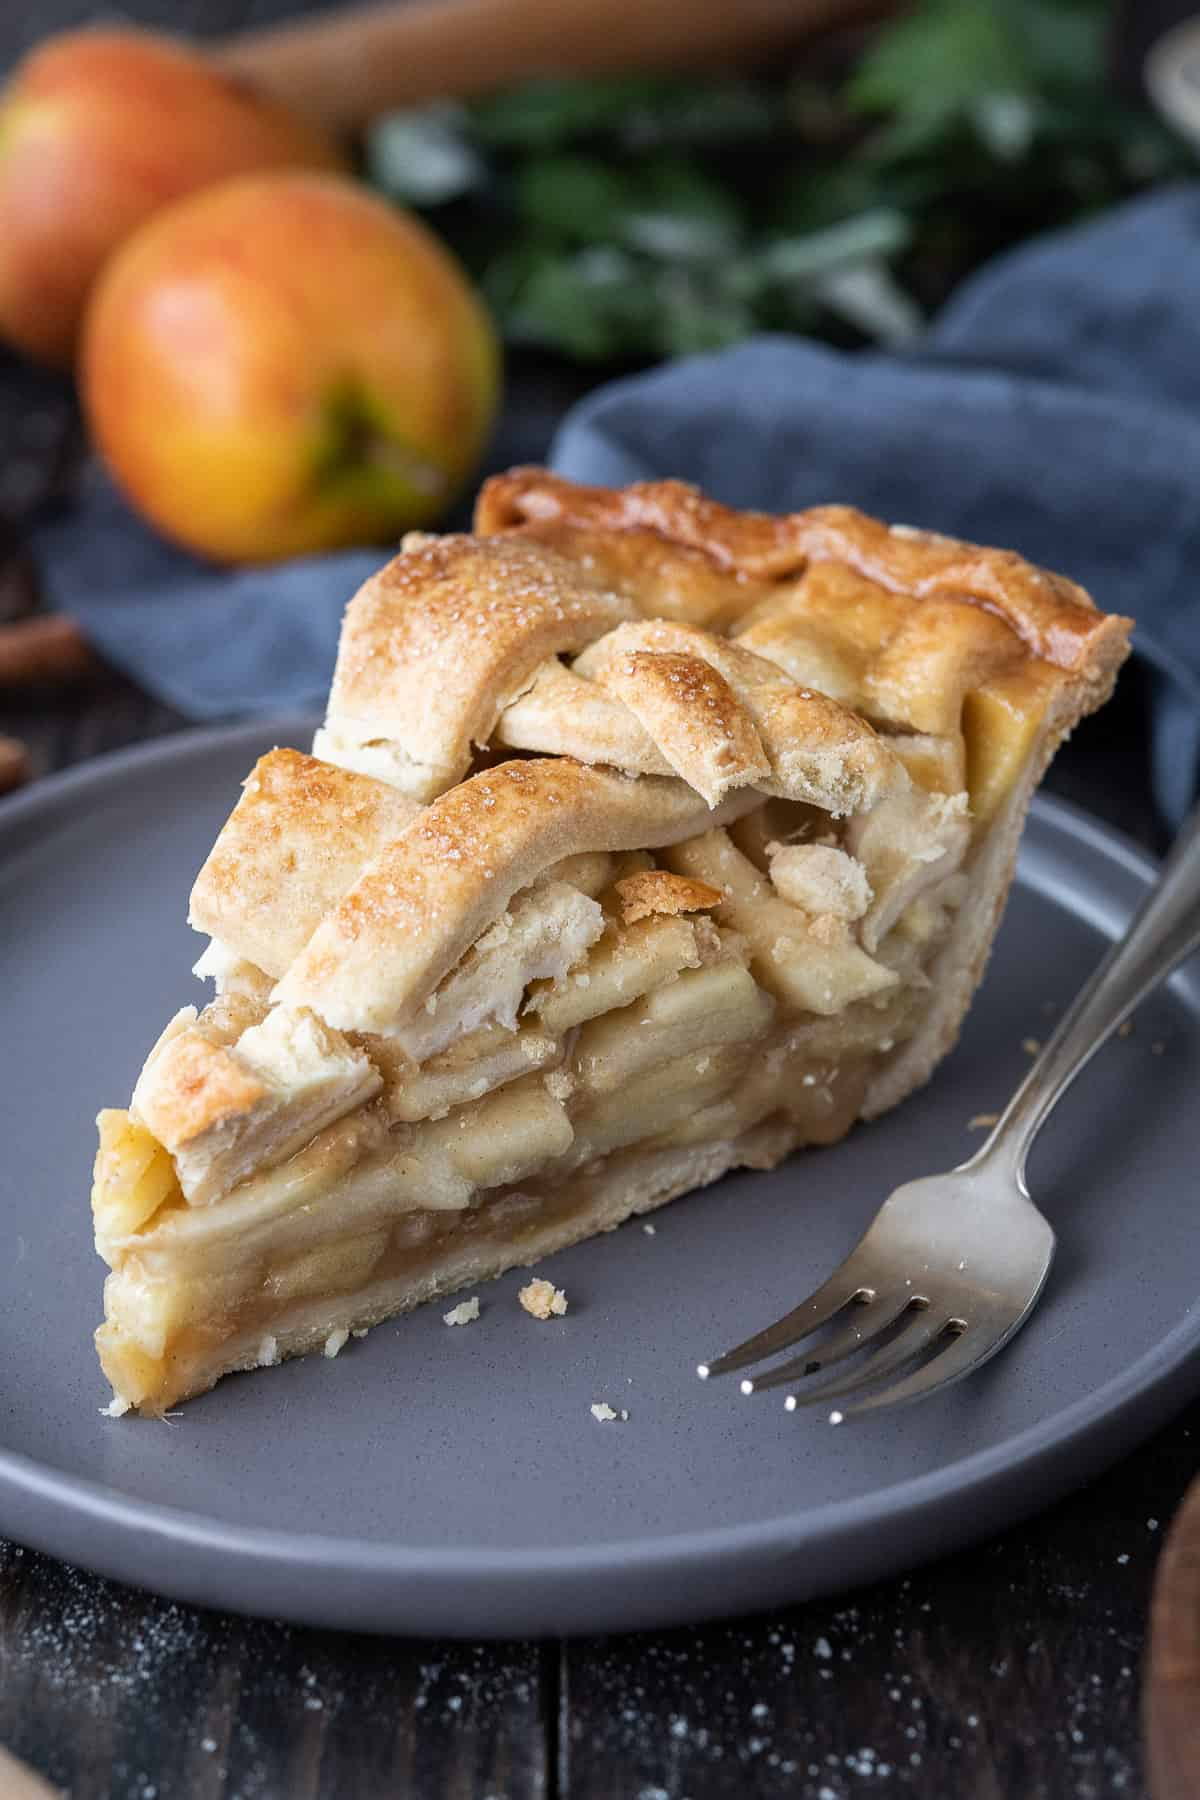 A slice of ginger apple pie on a grey plate with a fork.